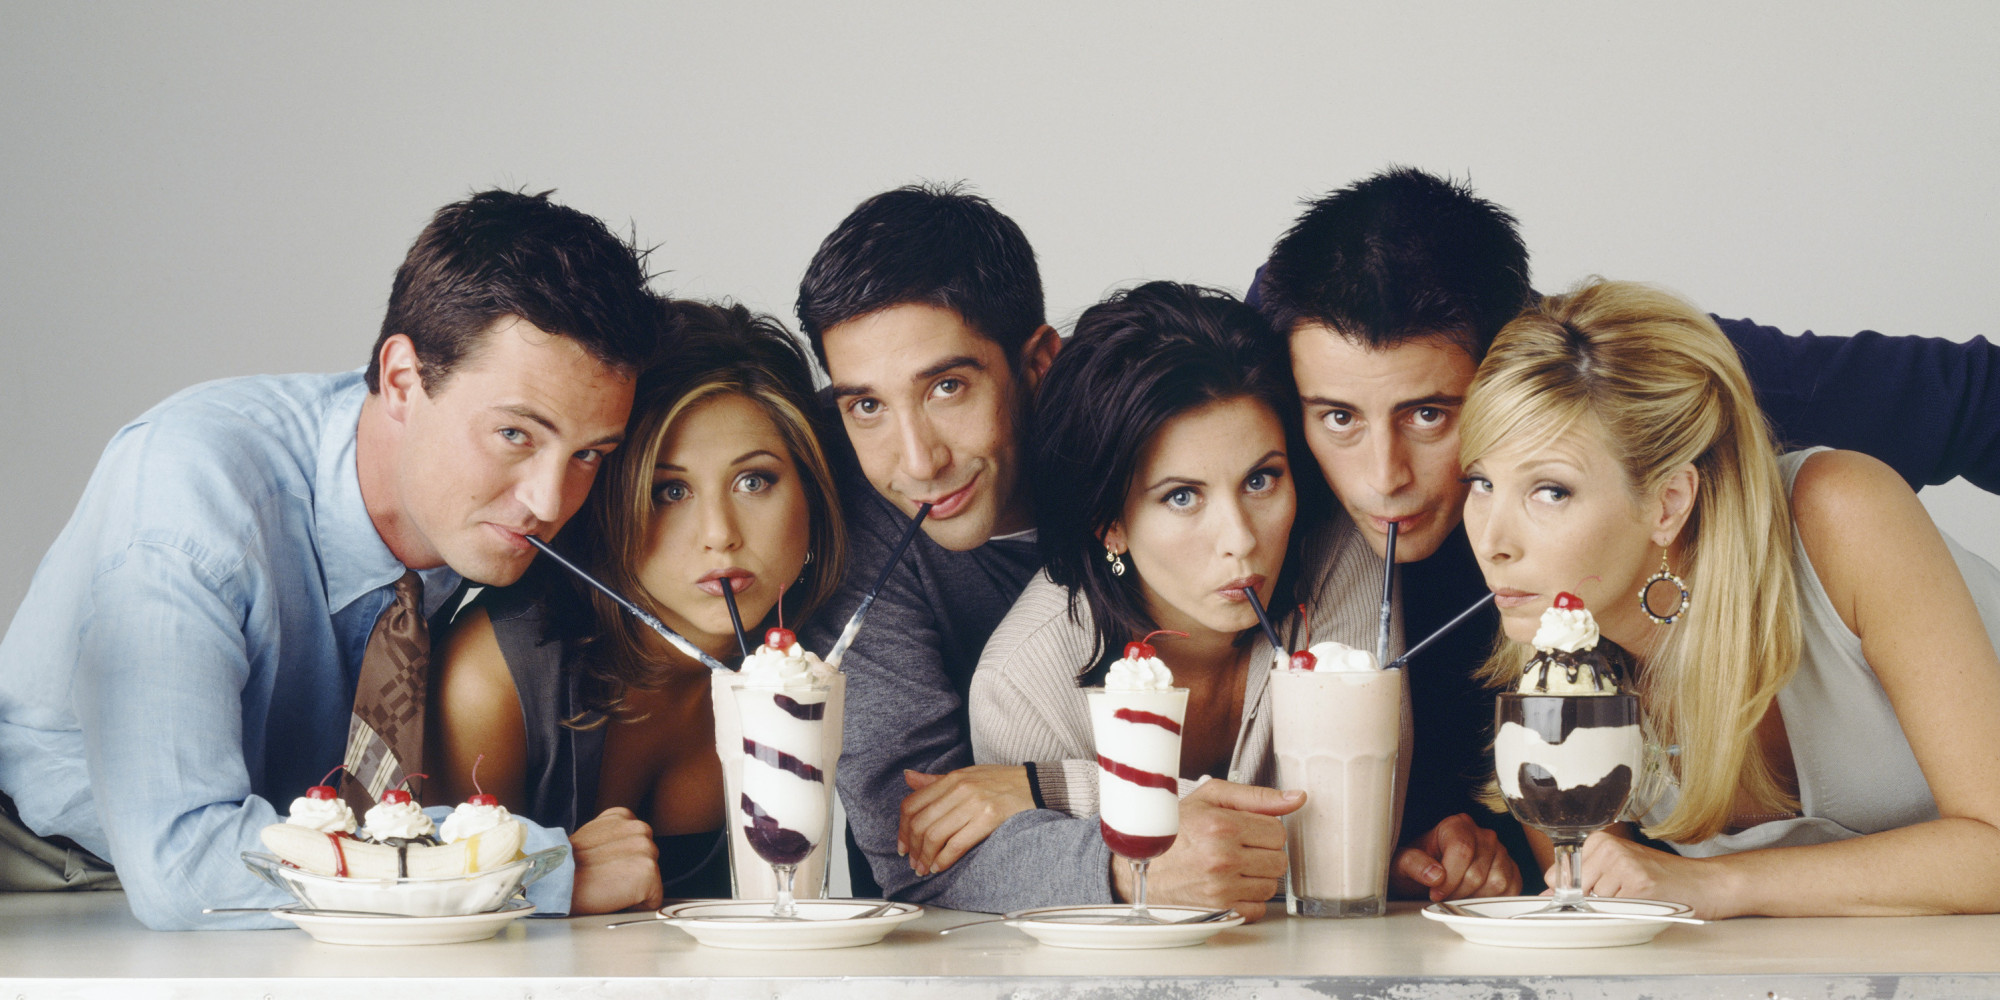 http://i.huffpost.com/gen/2176032/images/o-JENNIFER-ANISTON-FRIENDS-facebook.jpg